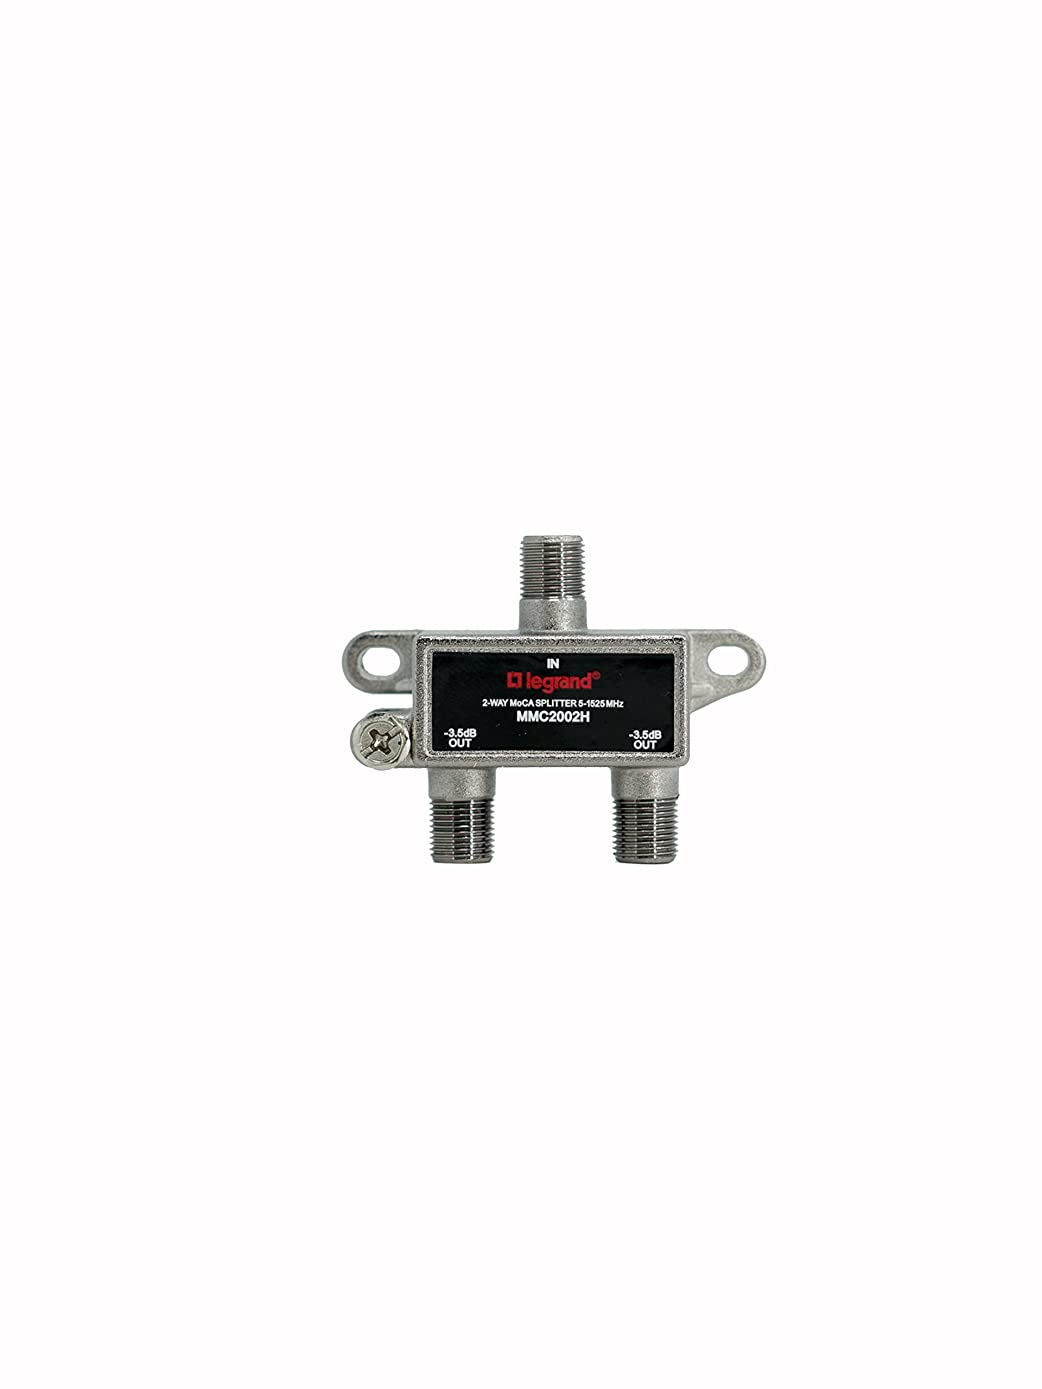 Legrand - On-Q VM2202V1 2Way Digital Cable Splitter with Coax Network Support